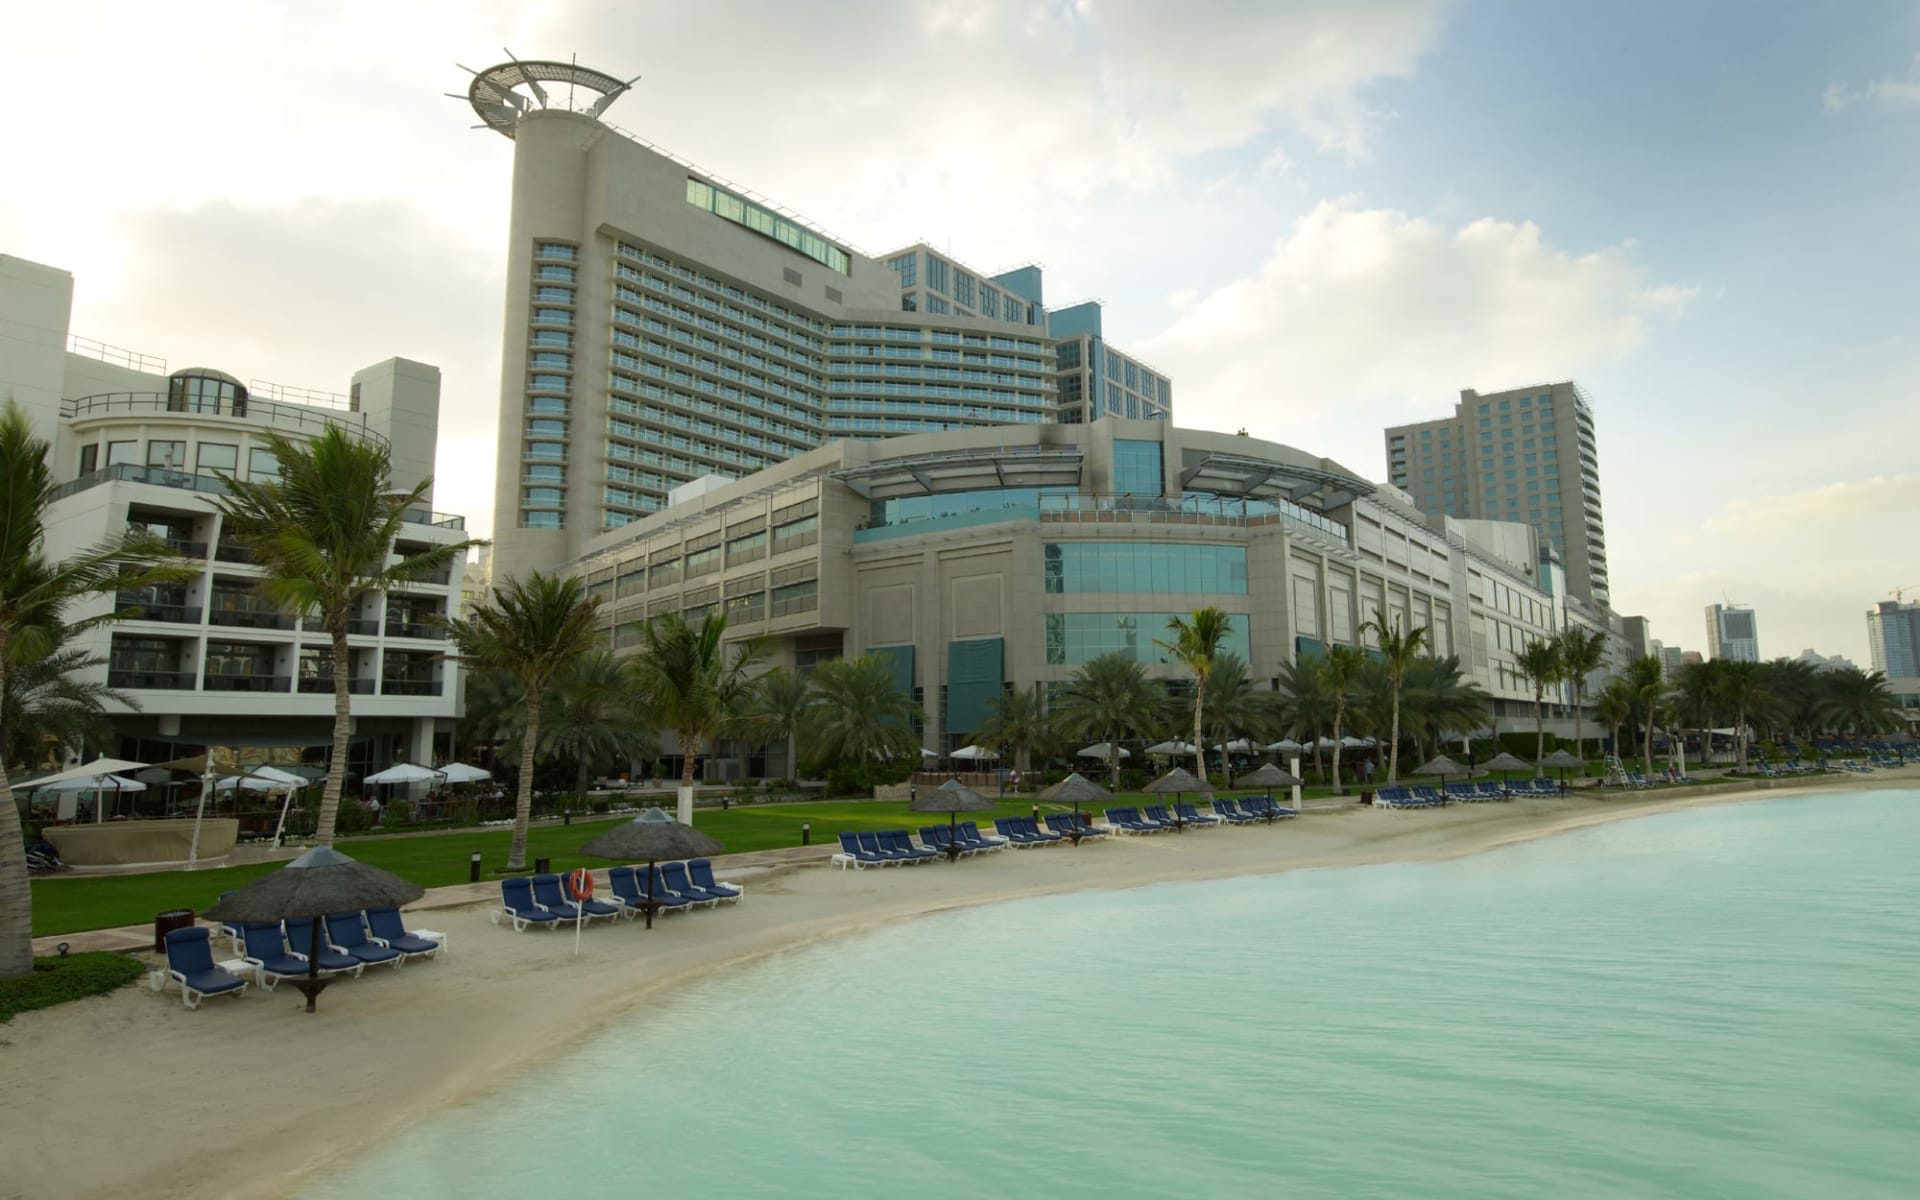 Beach Rotana Hotel & Towers in Abu Dhabi: